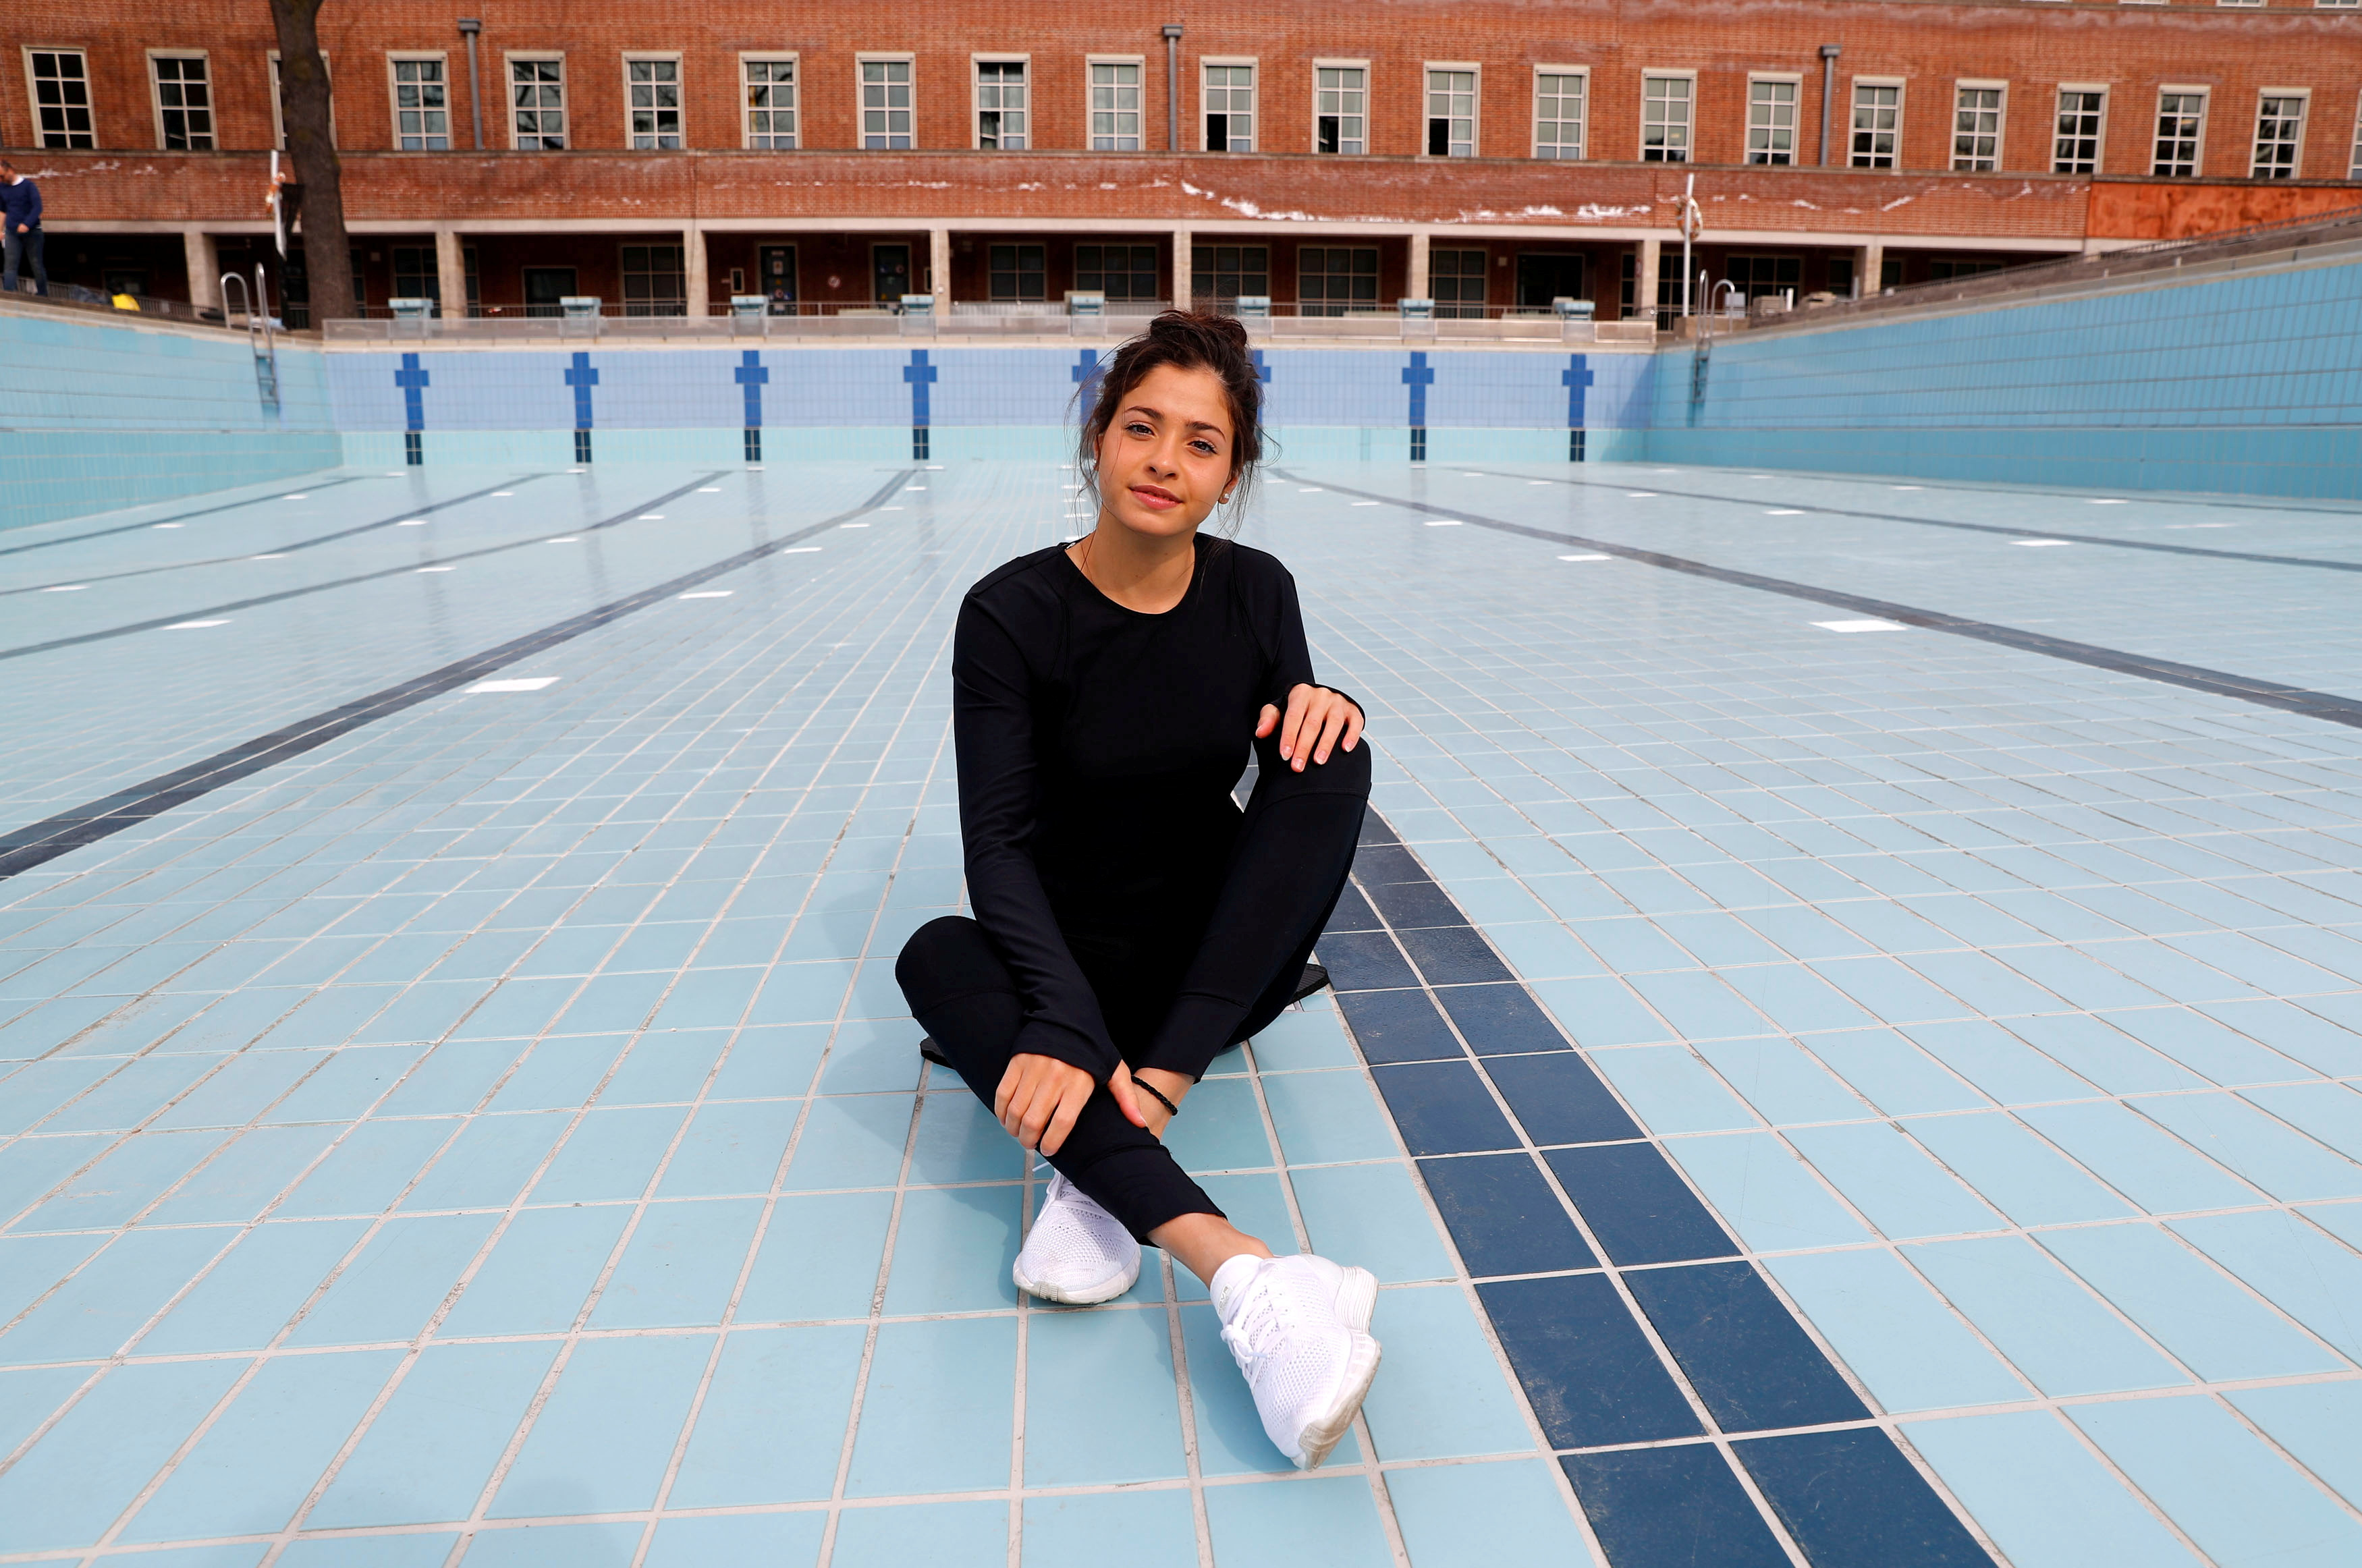 Syrian refugee and Olympic swimmer Yusra Mardini poses after a training session in a pool at the Olympic park in Berlin, Germany, April 12, 2018.   REUTERS/Fabrizio Bensch